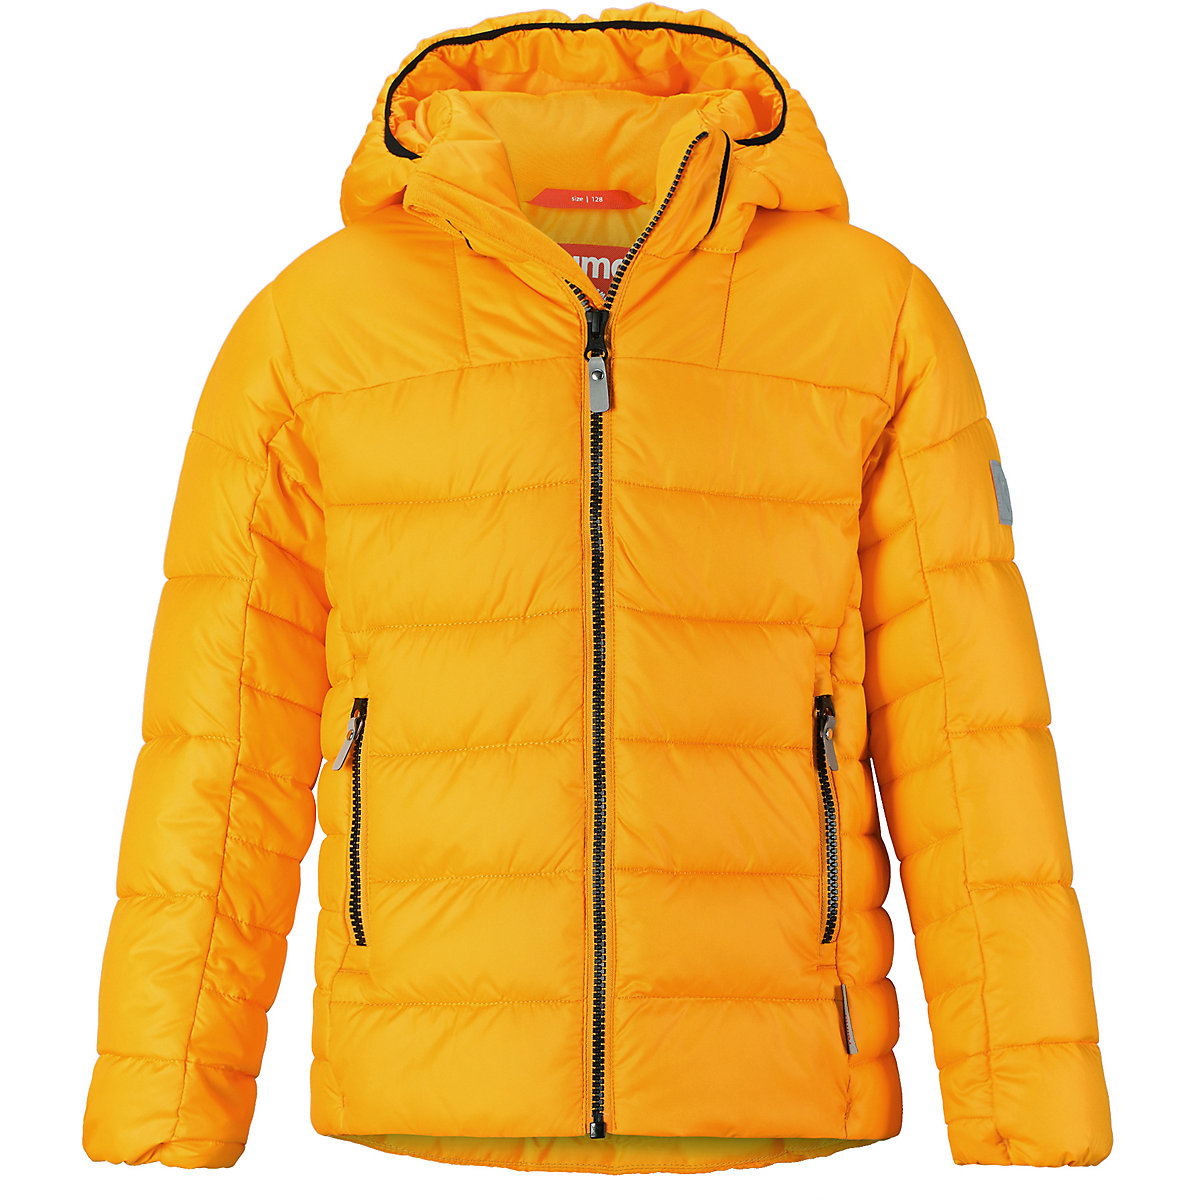 REIMA Jackets 8688718 for boys polyester winter  fur clothes boy vector brand ski jackets men outdoor thermal waterproof snowboard skiing jackets climbing snow winter clothes hxf70002